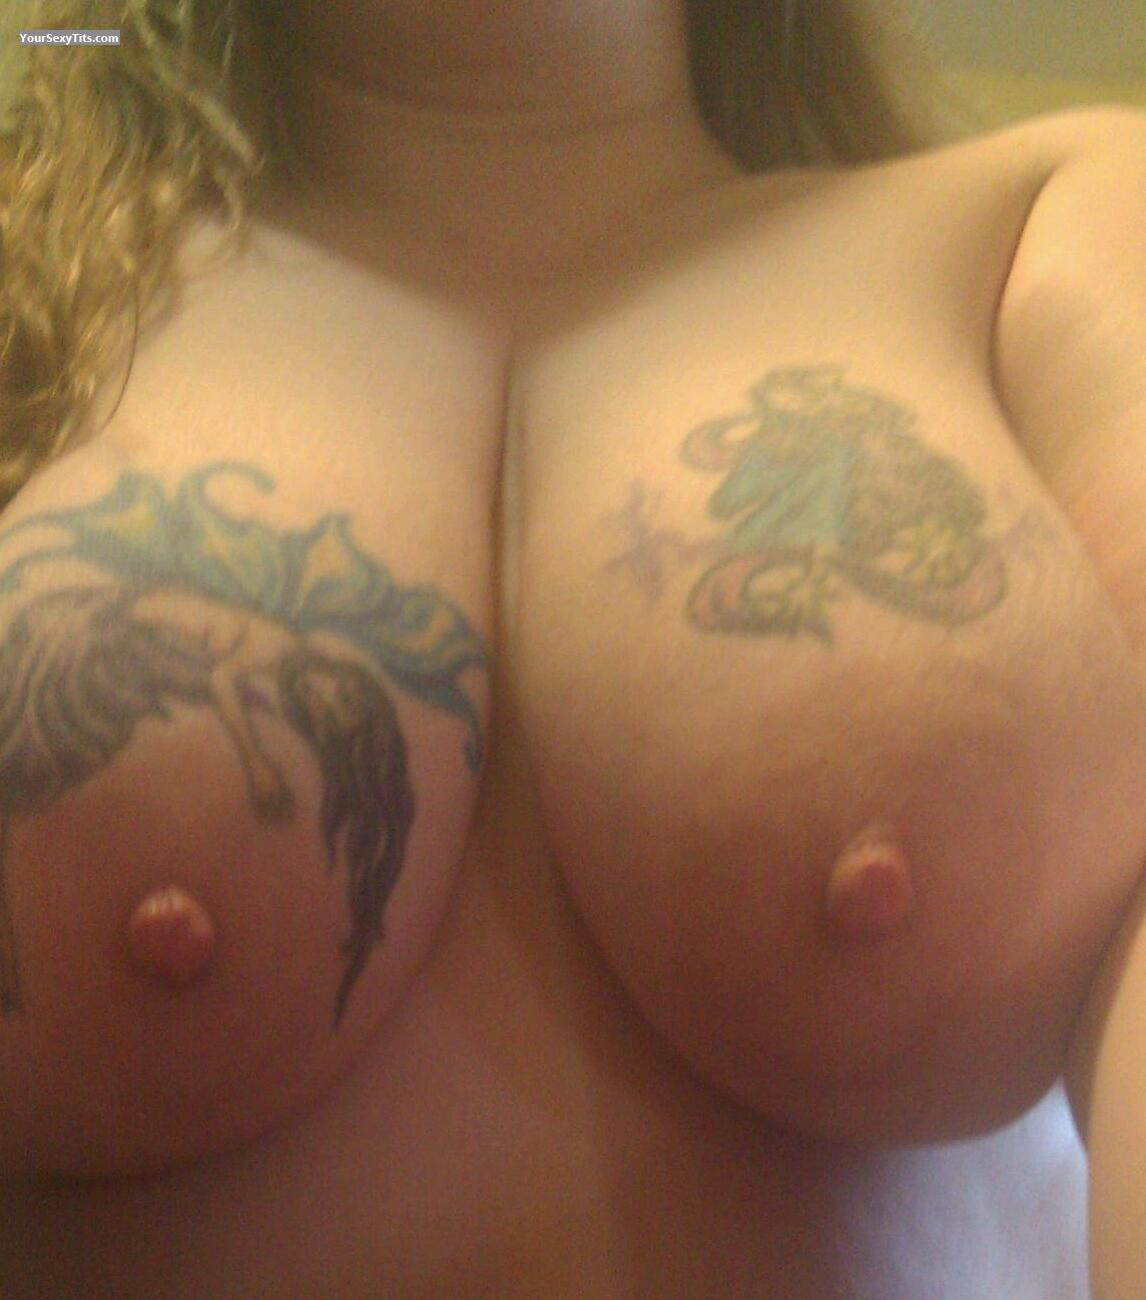 My Very big Tits Selfie by Titlovet4u